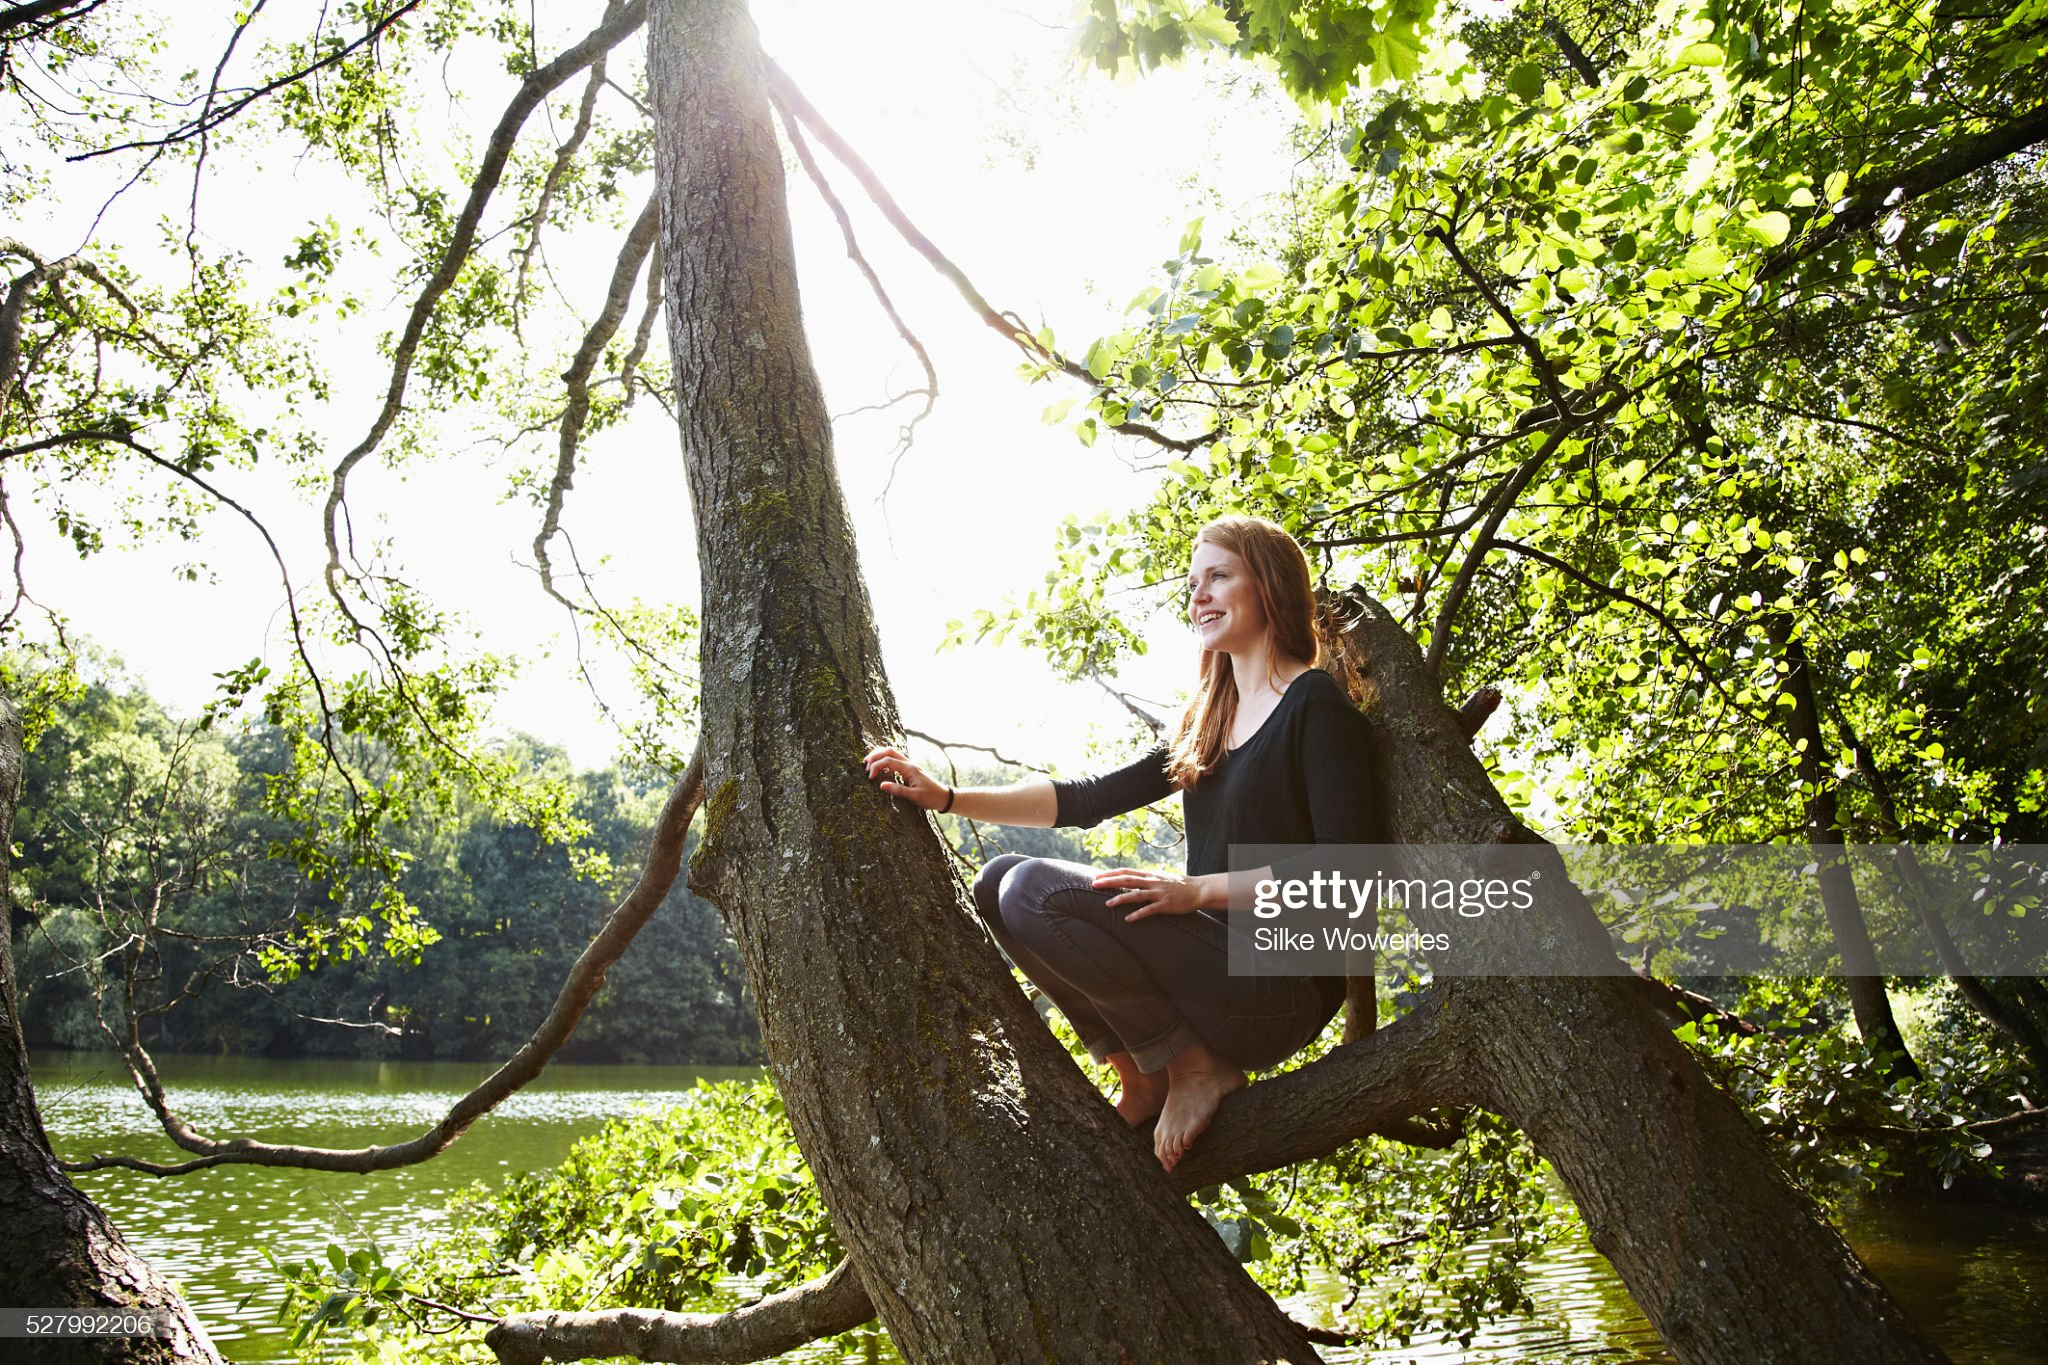 https://media.gettyimages.com/photos/young-woman-sitting-relaxed-on-branch-picture-id527992206?s=2048x2048